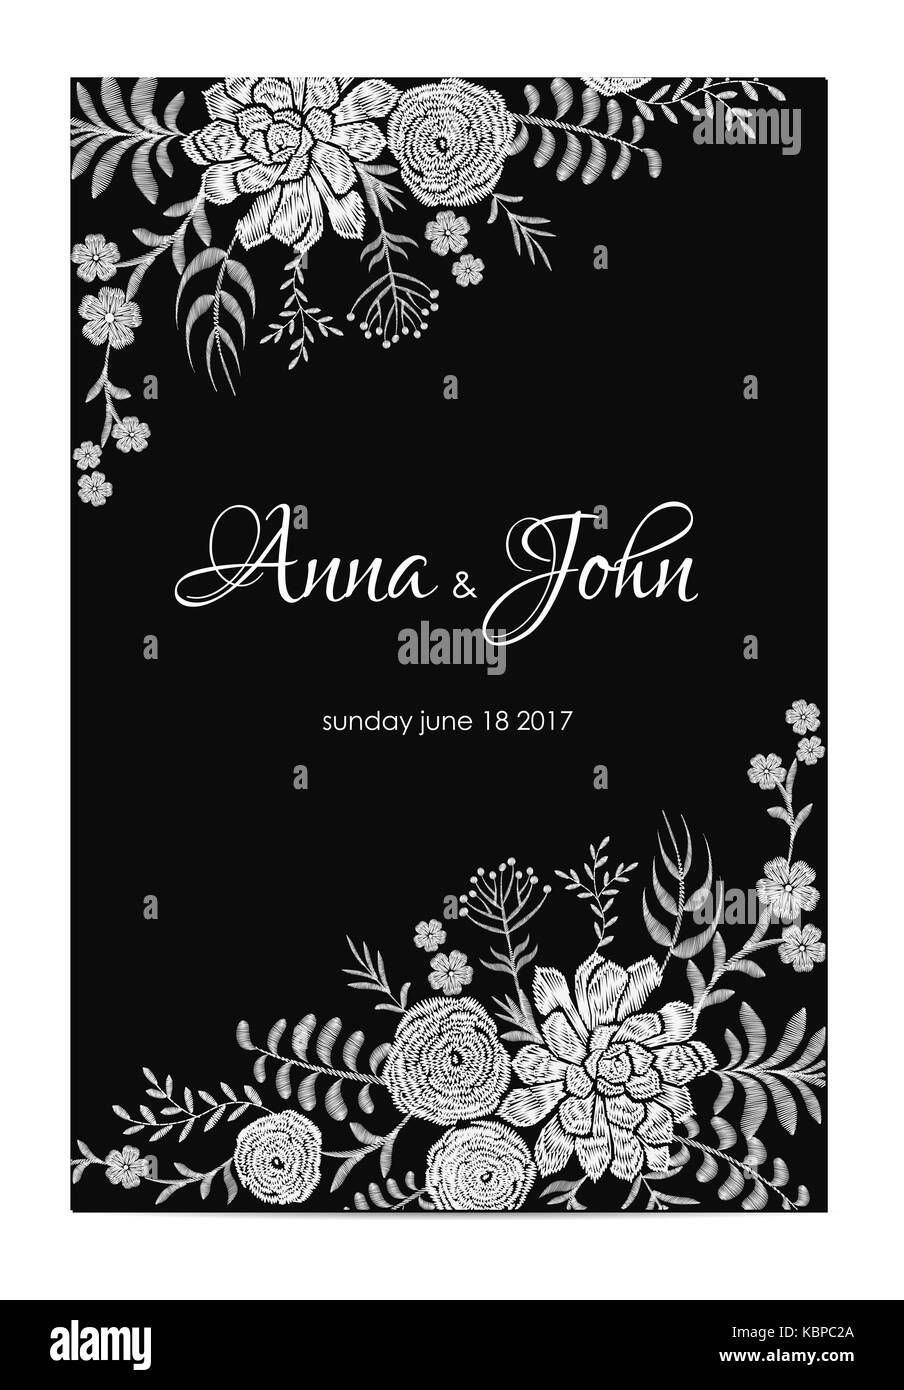 Black and White Wedding Invitation. Vintage Greeting Card Template ...